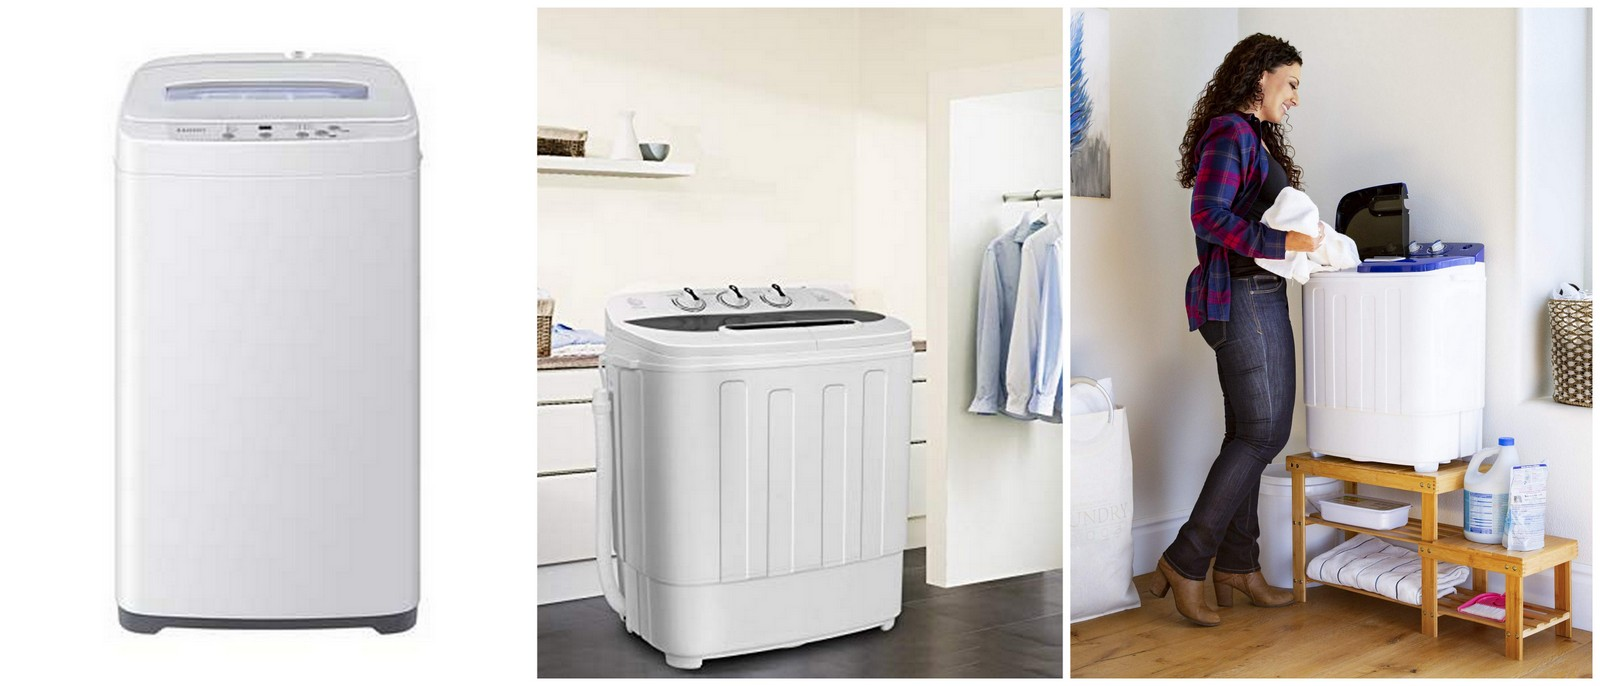 Best Portable Washers of 2019